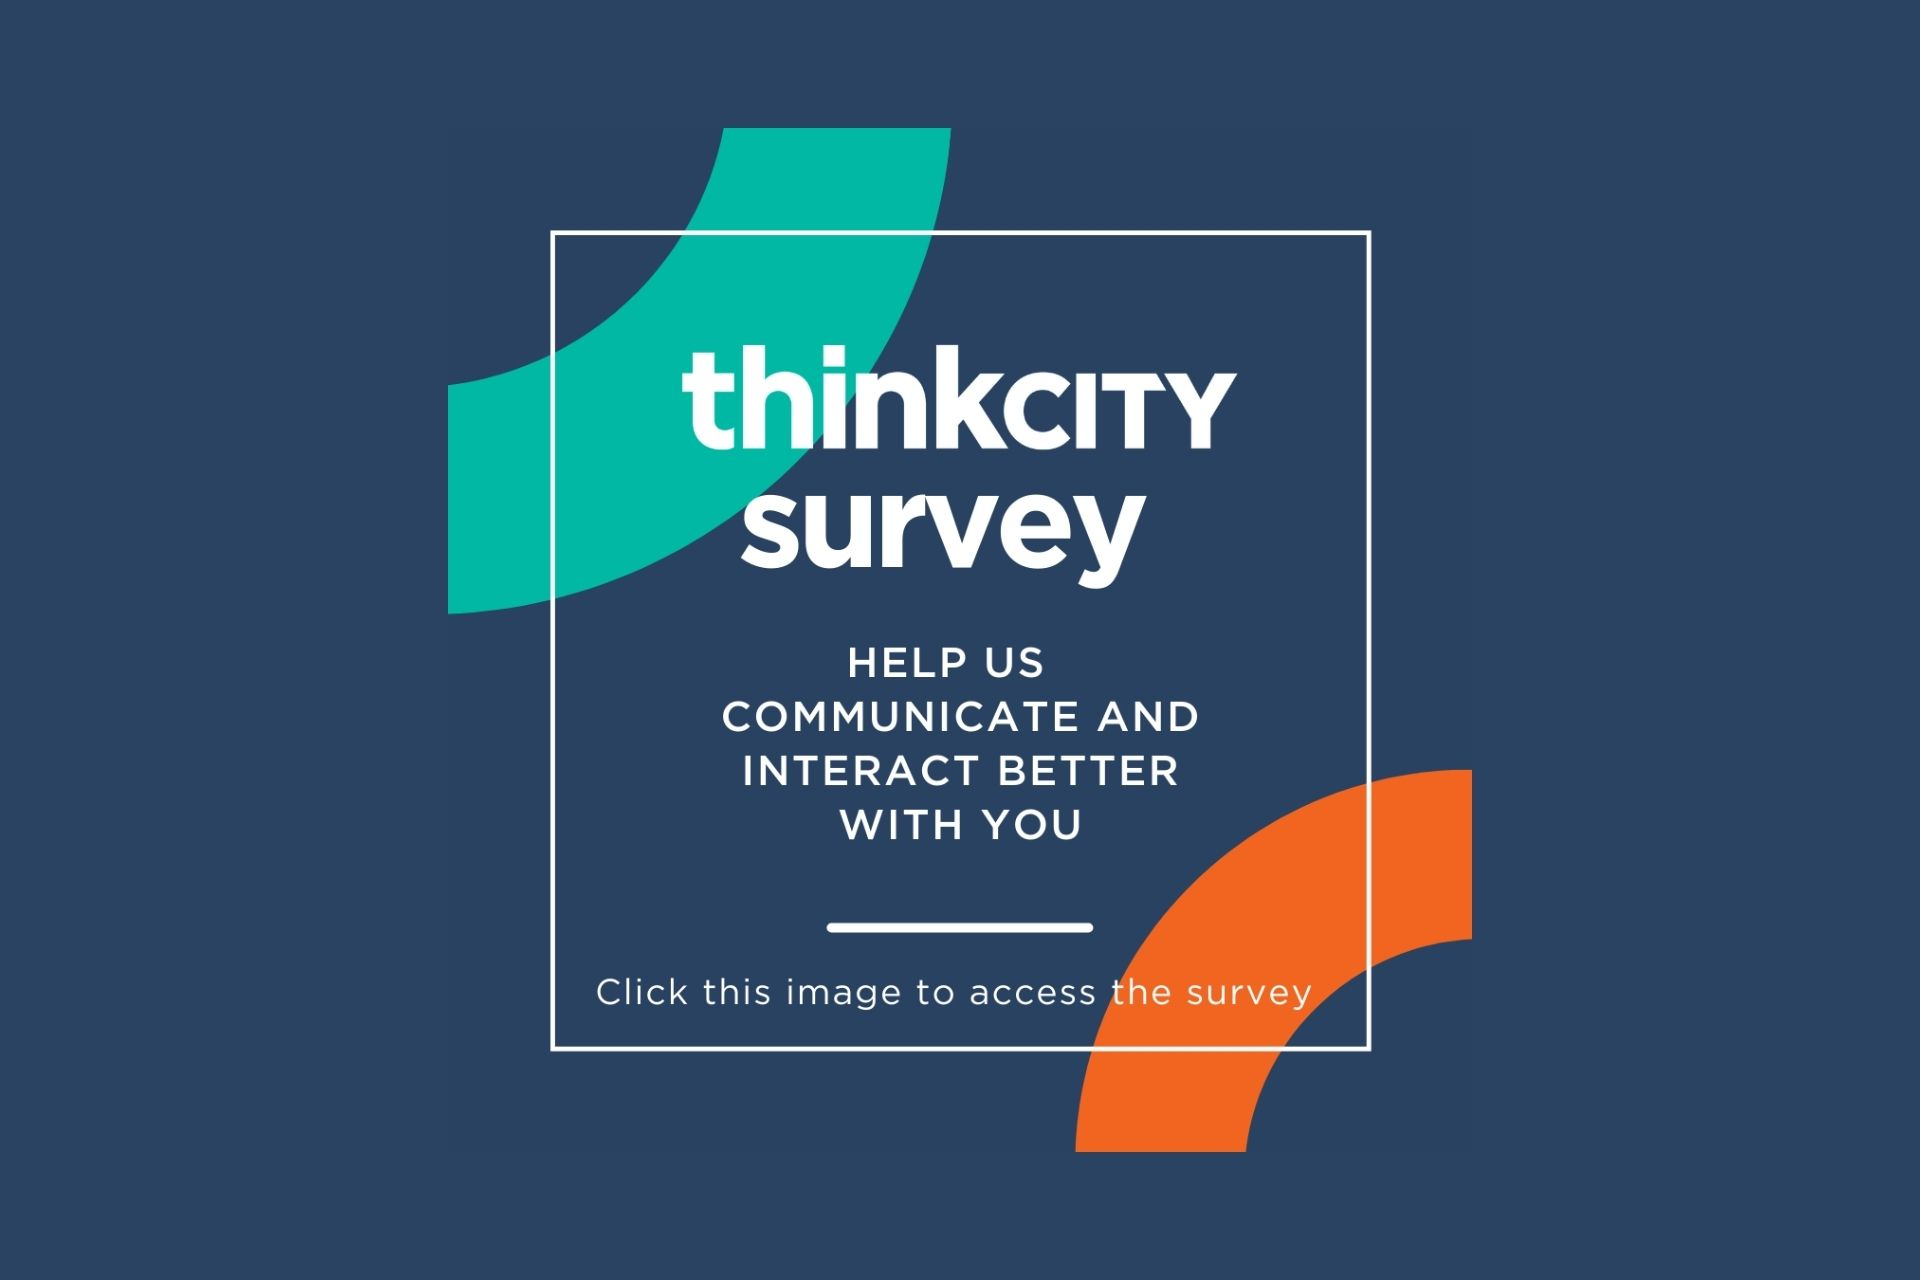 Tell Us What You Think About Think City